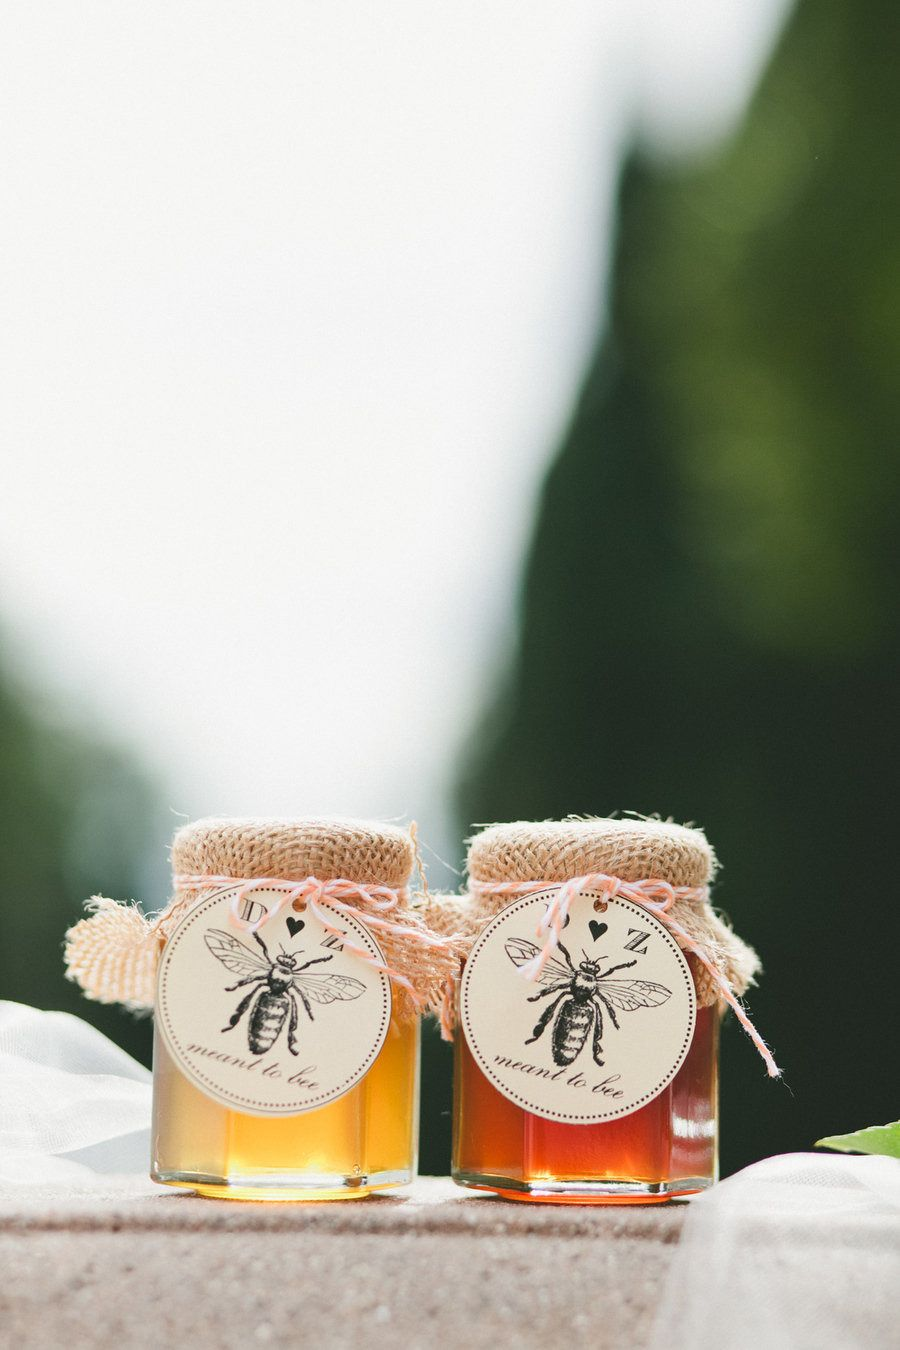 Sierra Madre, California Wedding from onelove photography ...